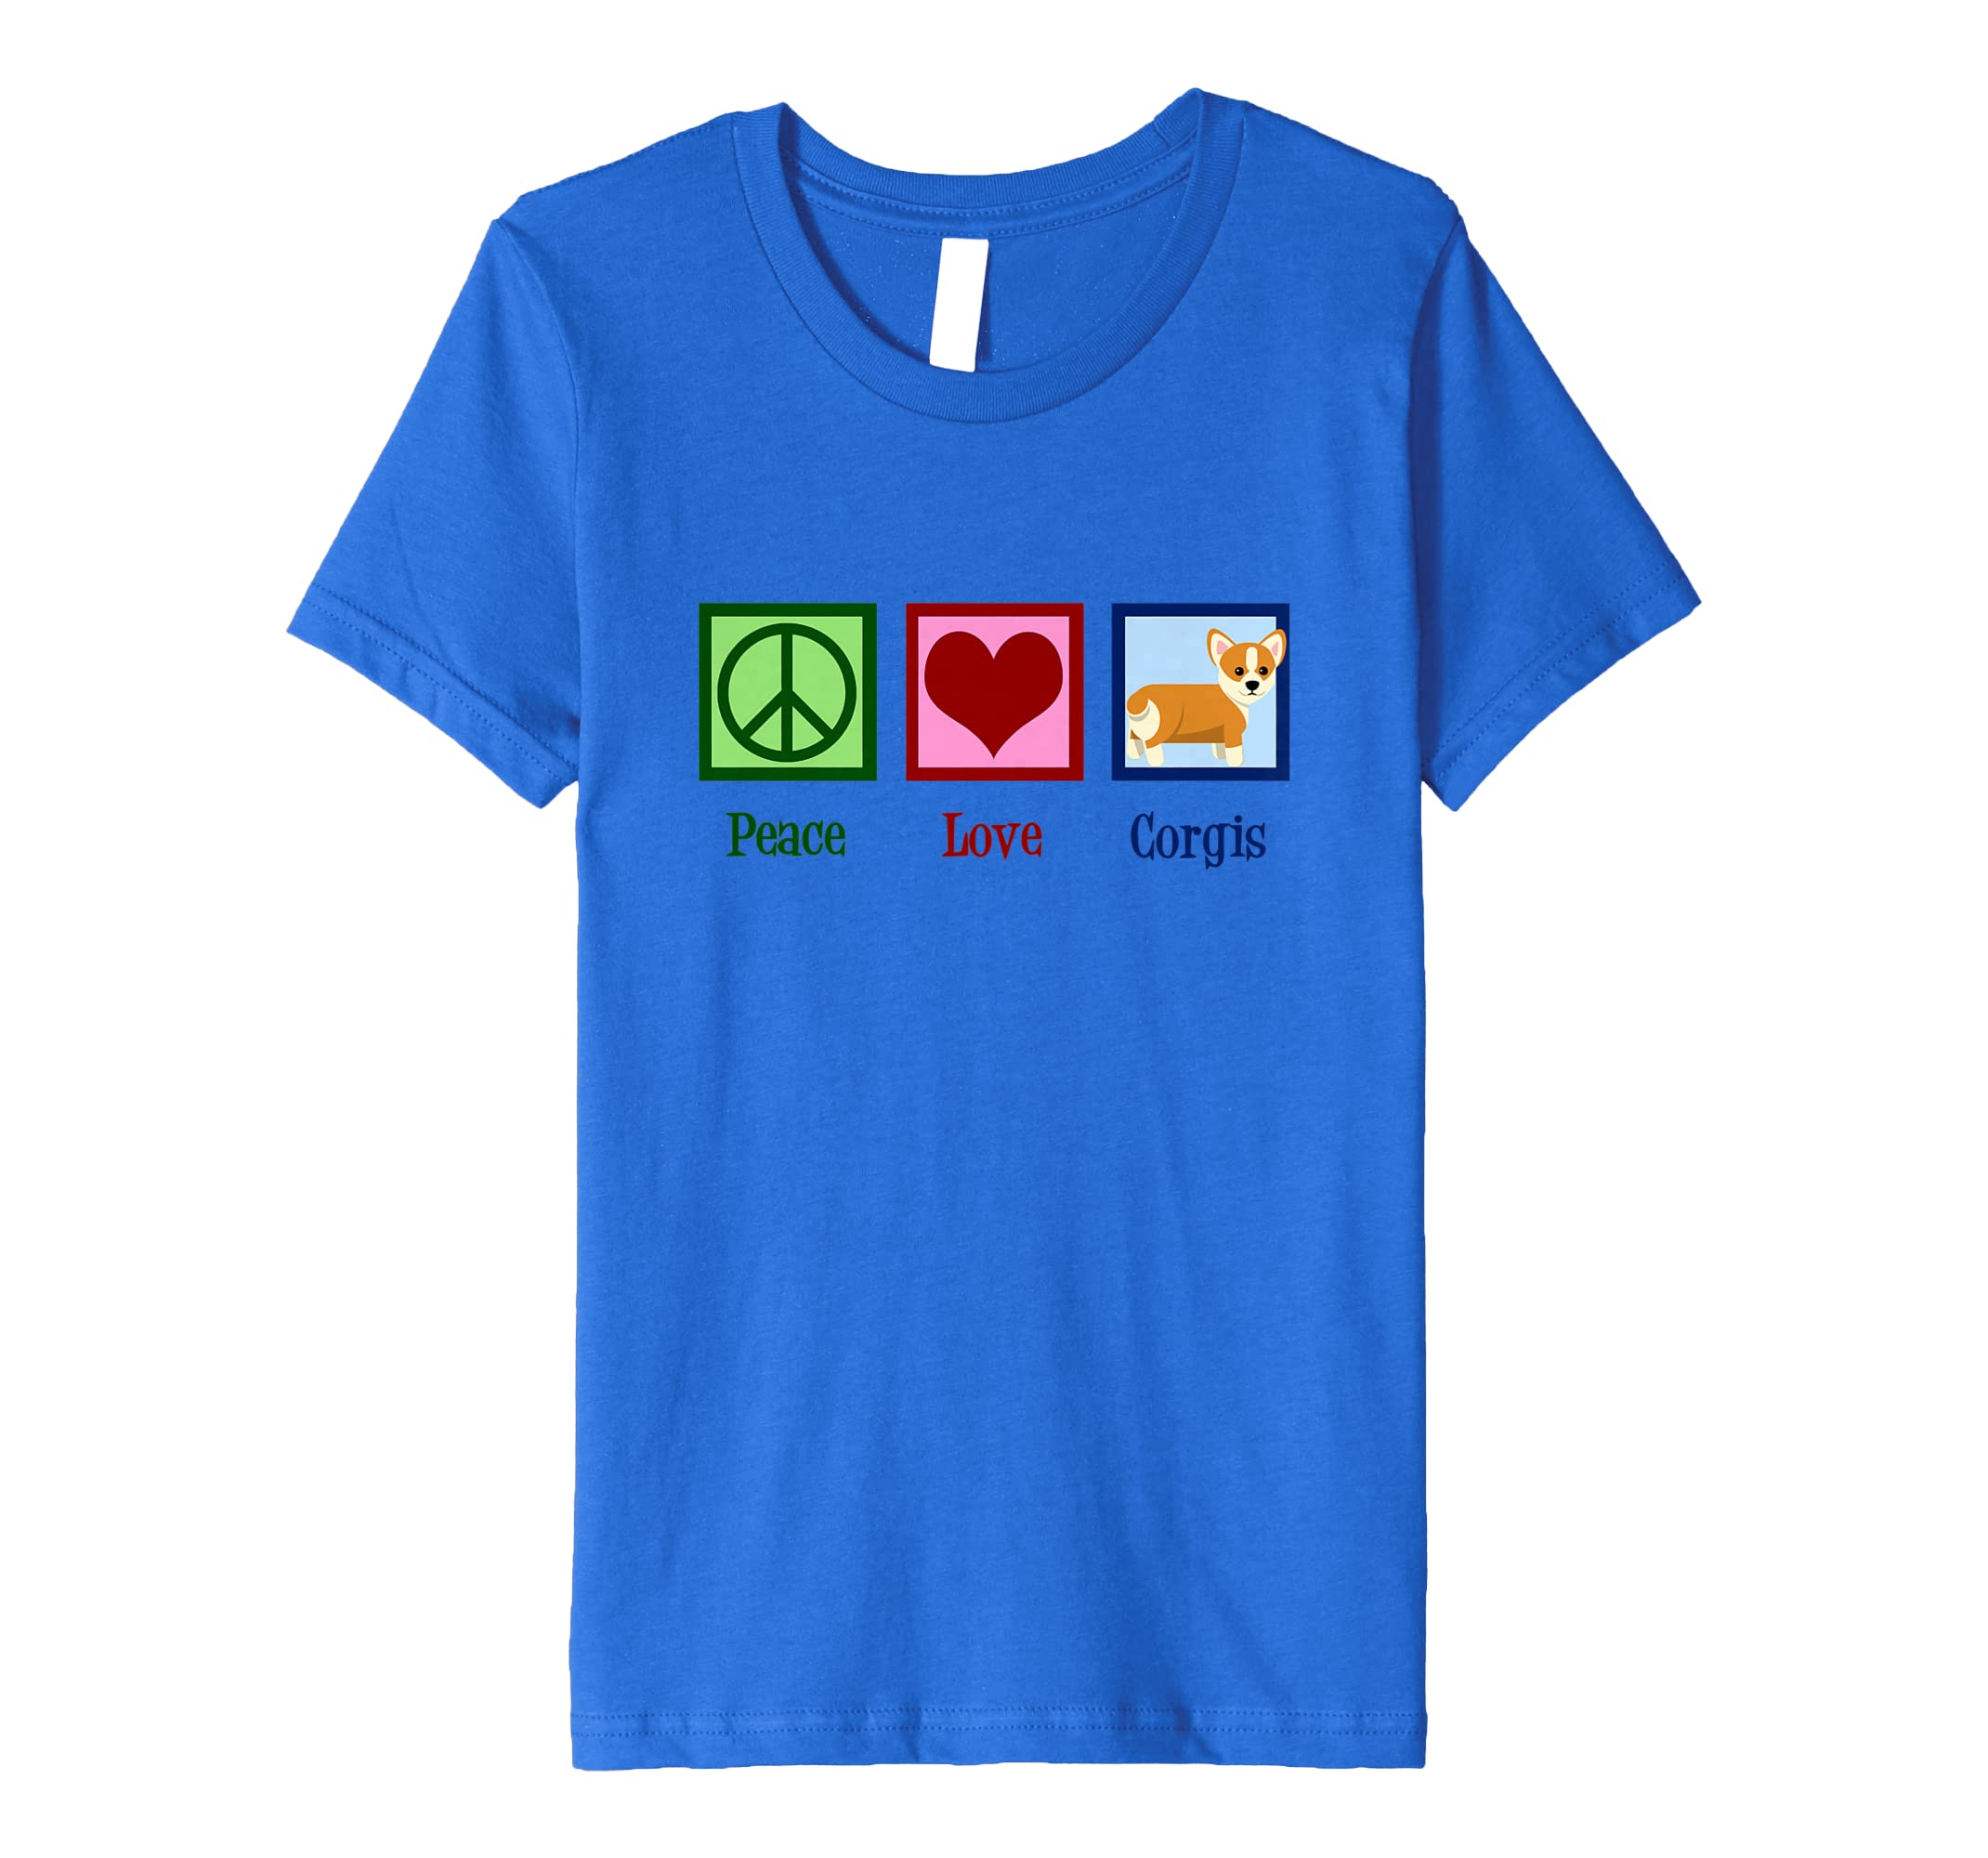 6d73fd9a9b14 Amazon.com  Cute Corgi T-Shirt - Peace Love Corgis Tee  Clothing